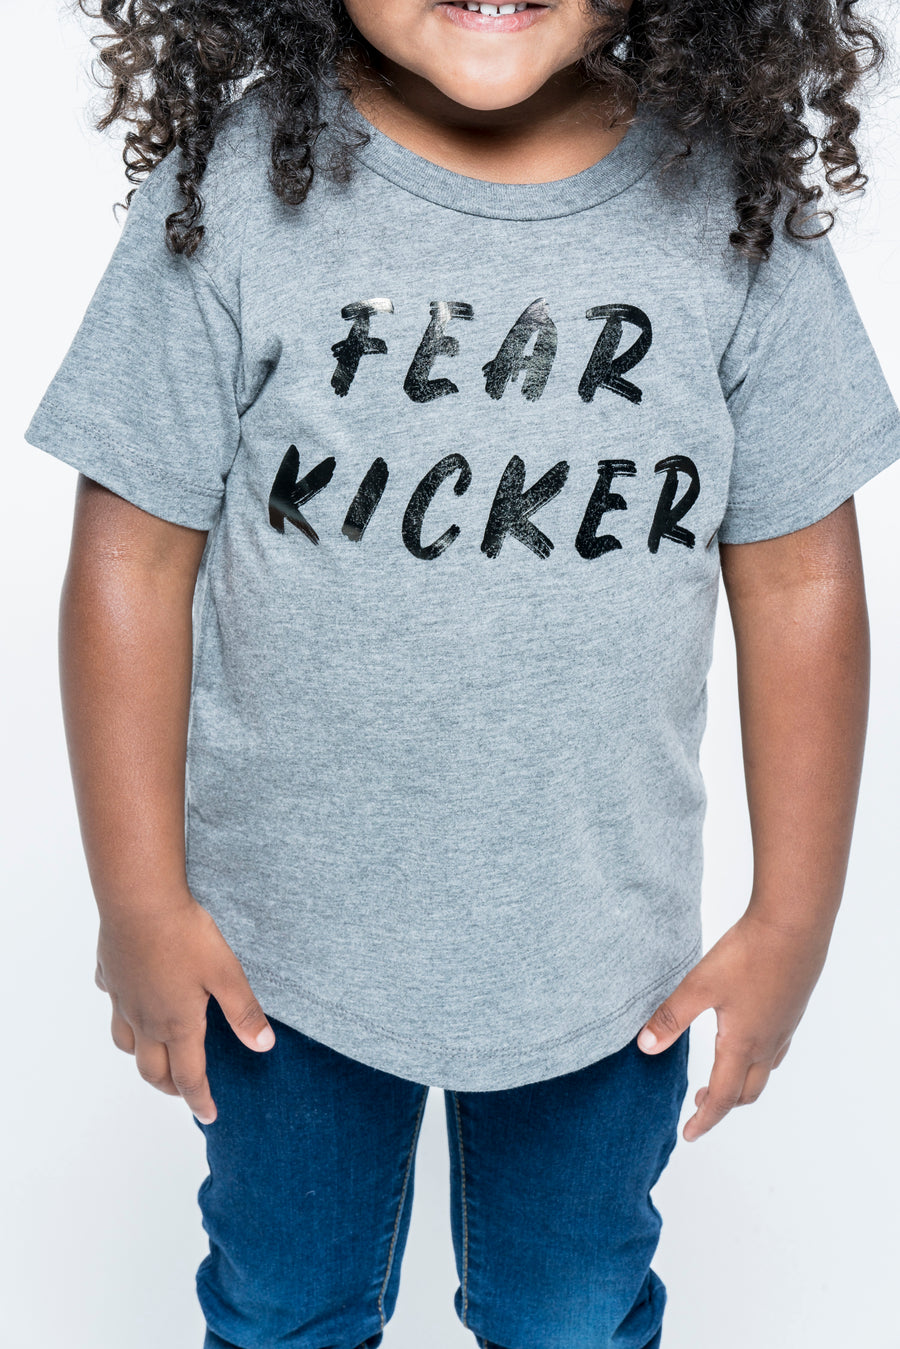 Toddler Fear Kicker T-Shirt